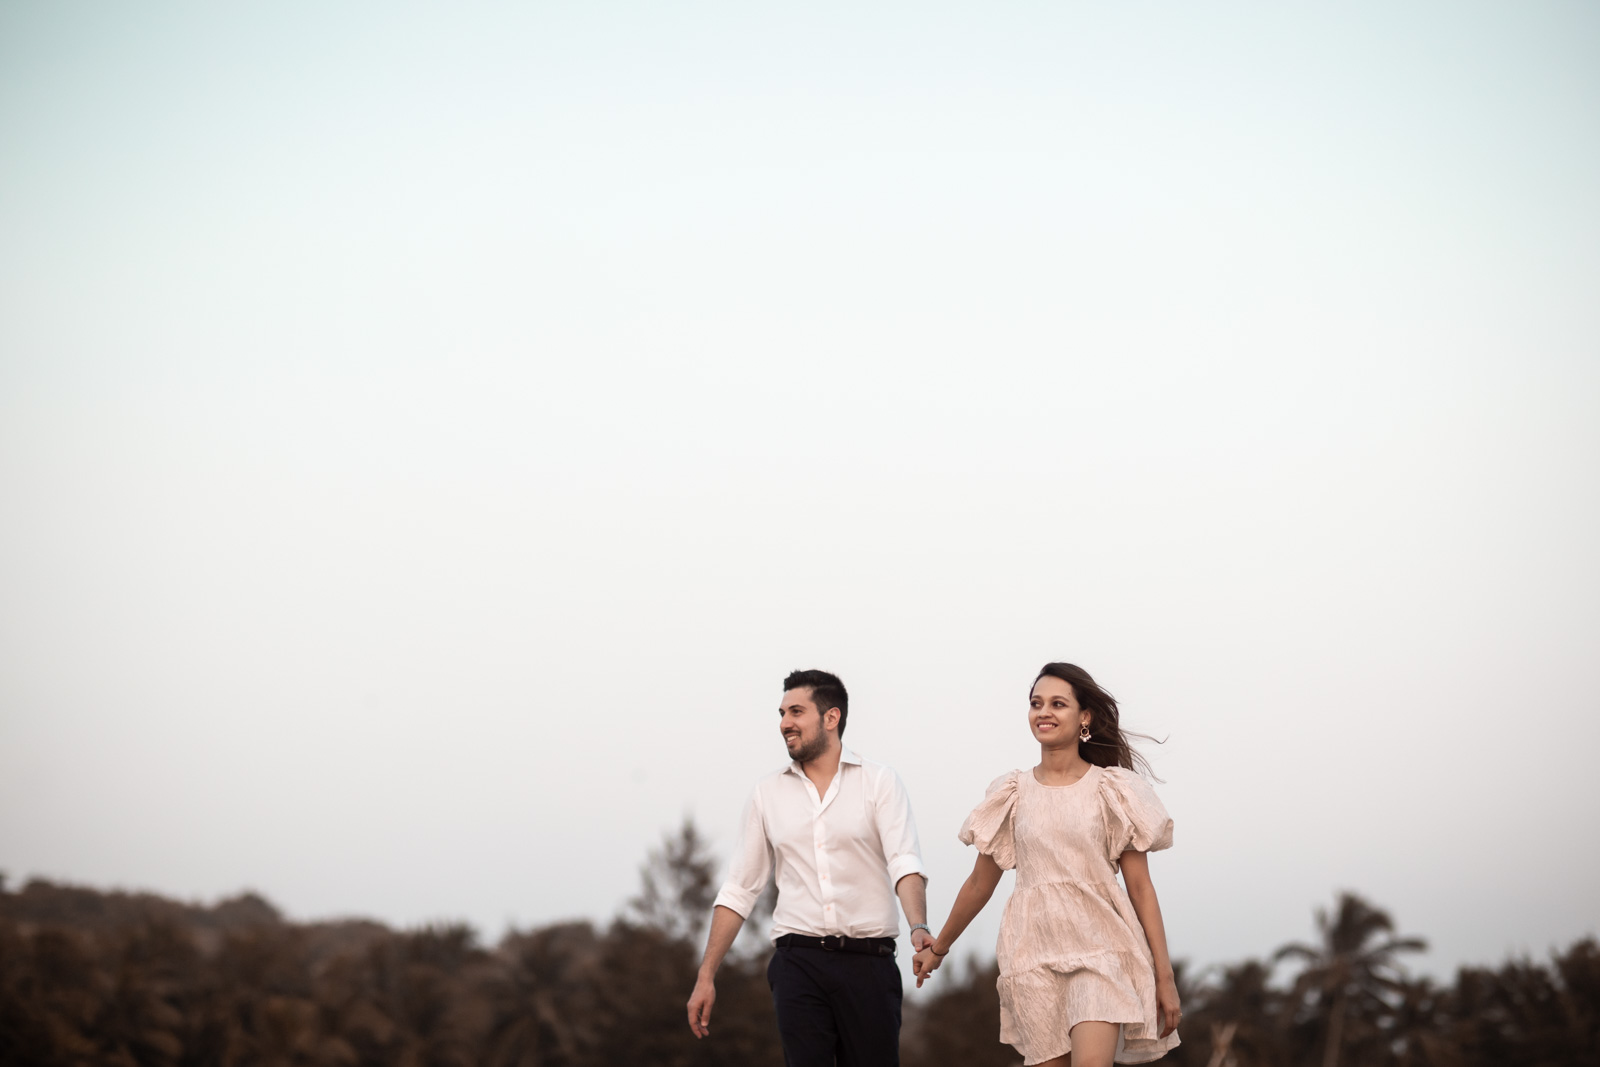 Intimate wedding photographer Bangalore